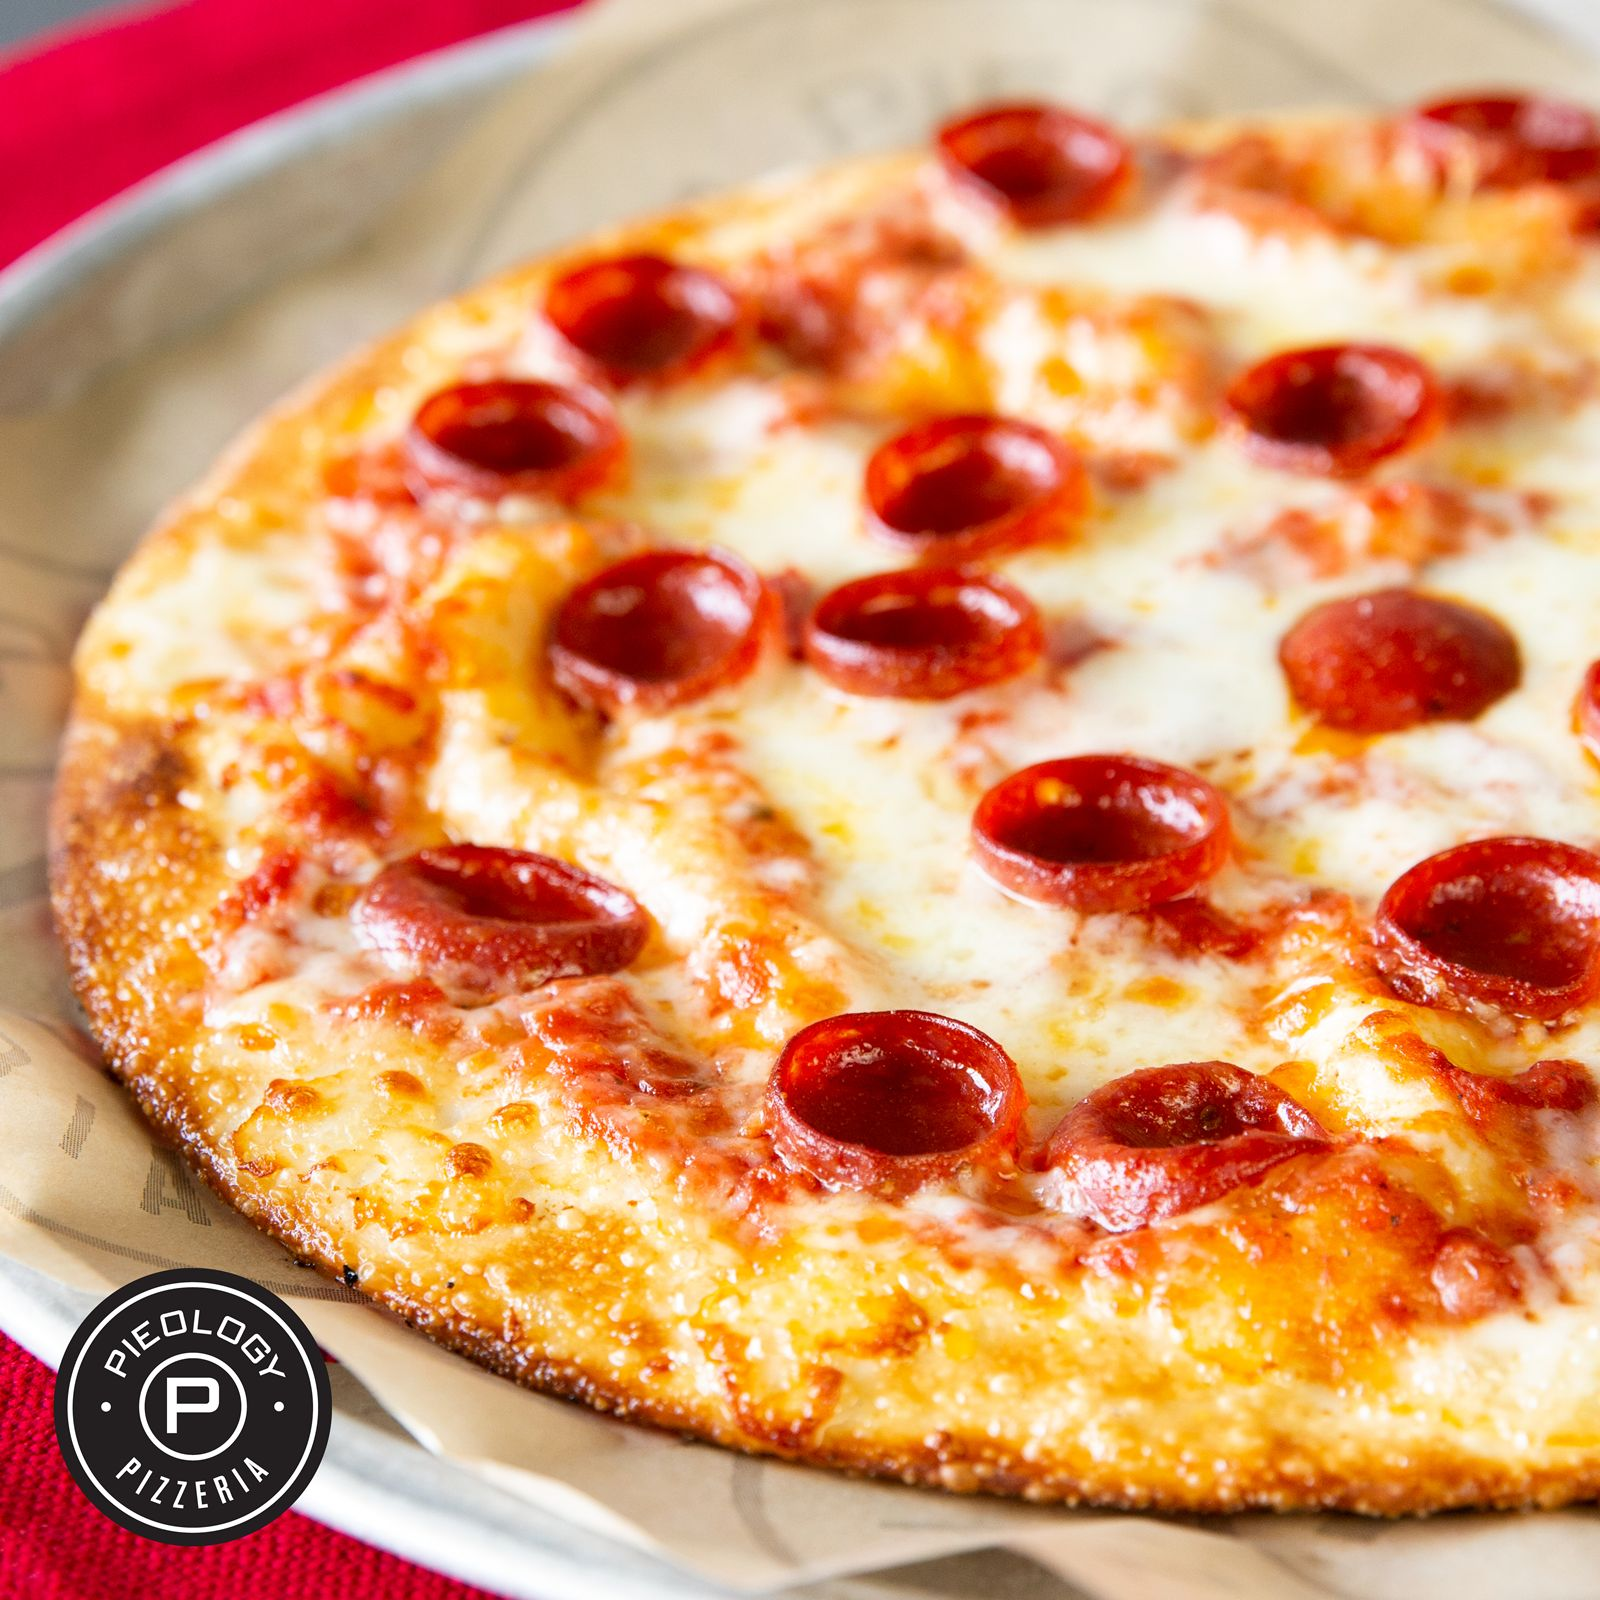 Pieology Celebrates National Pi Day with Special Discounts, Cheese Pull Contest